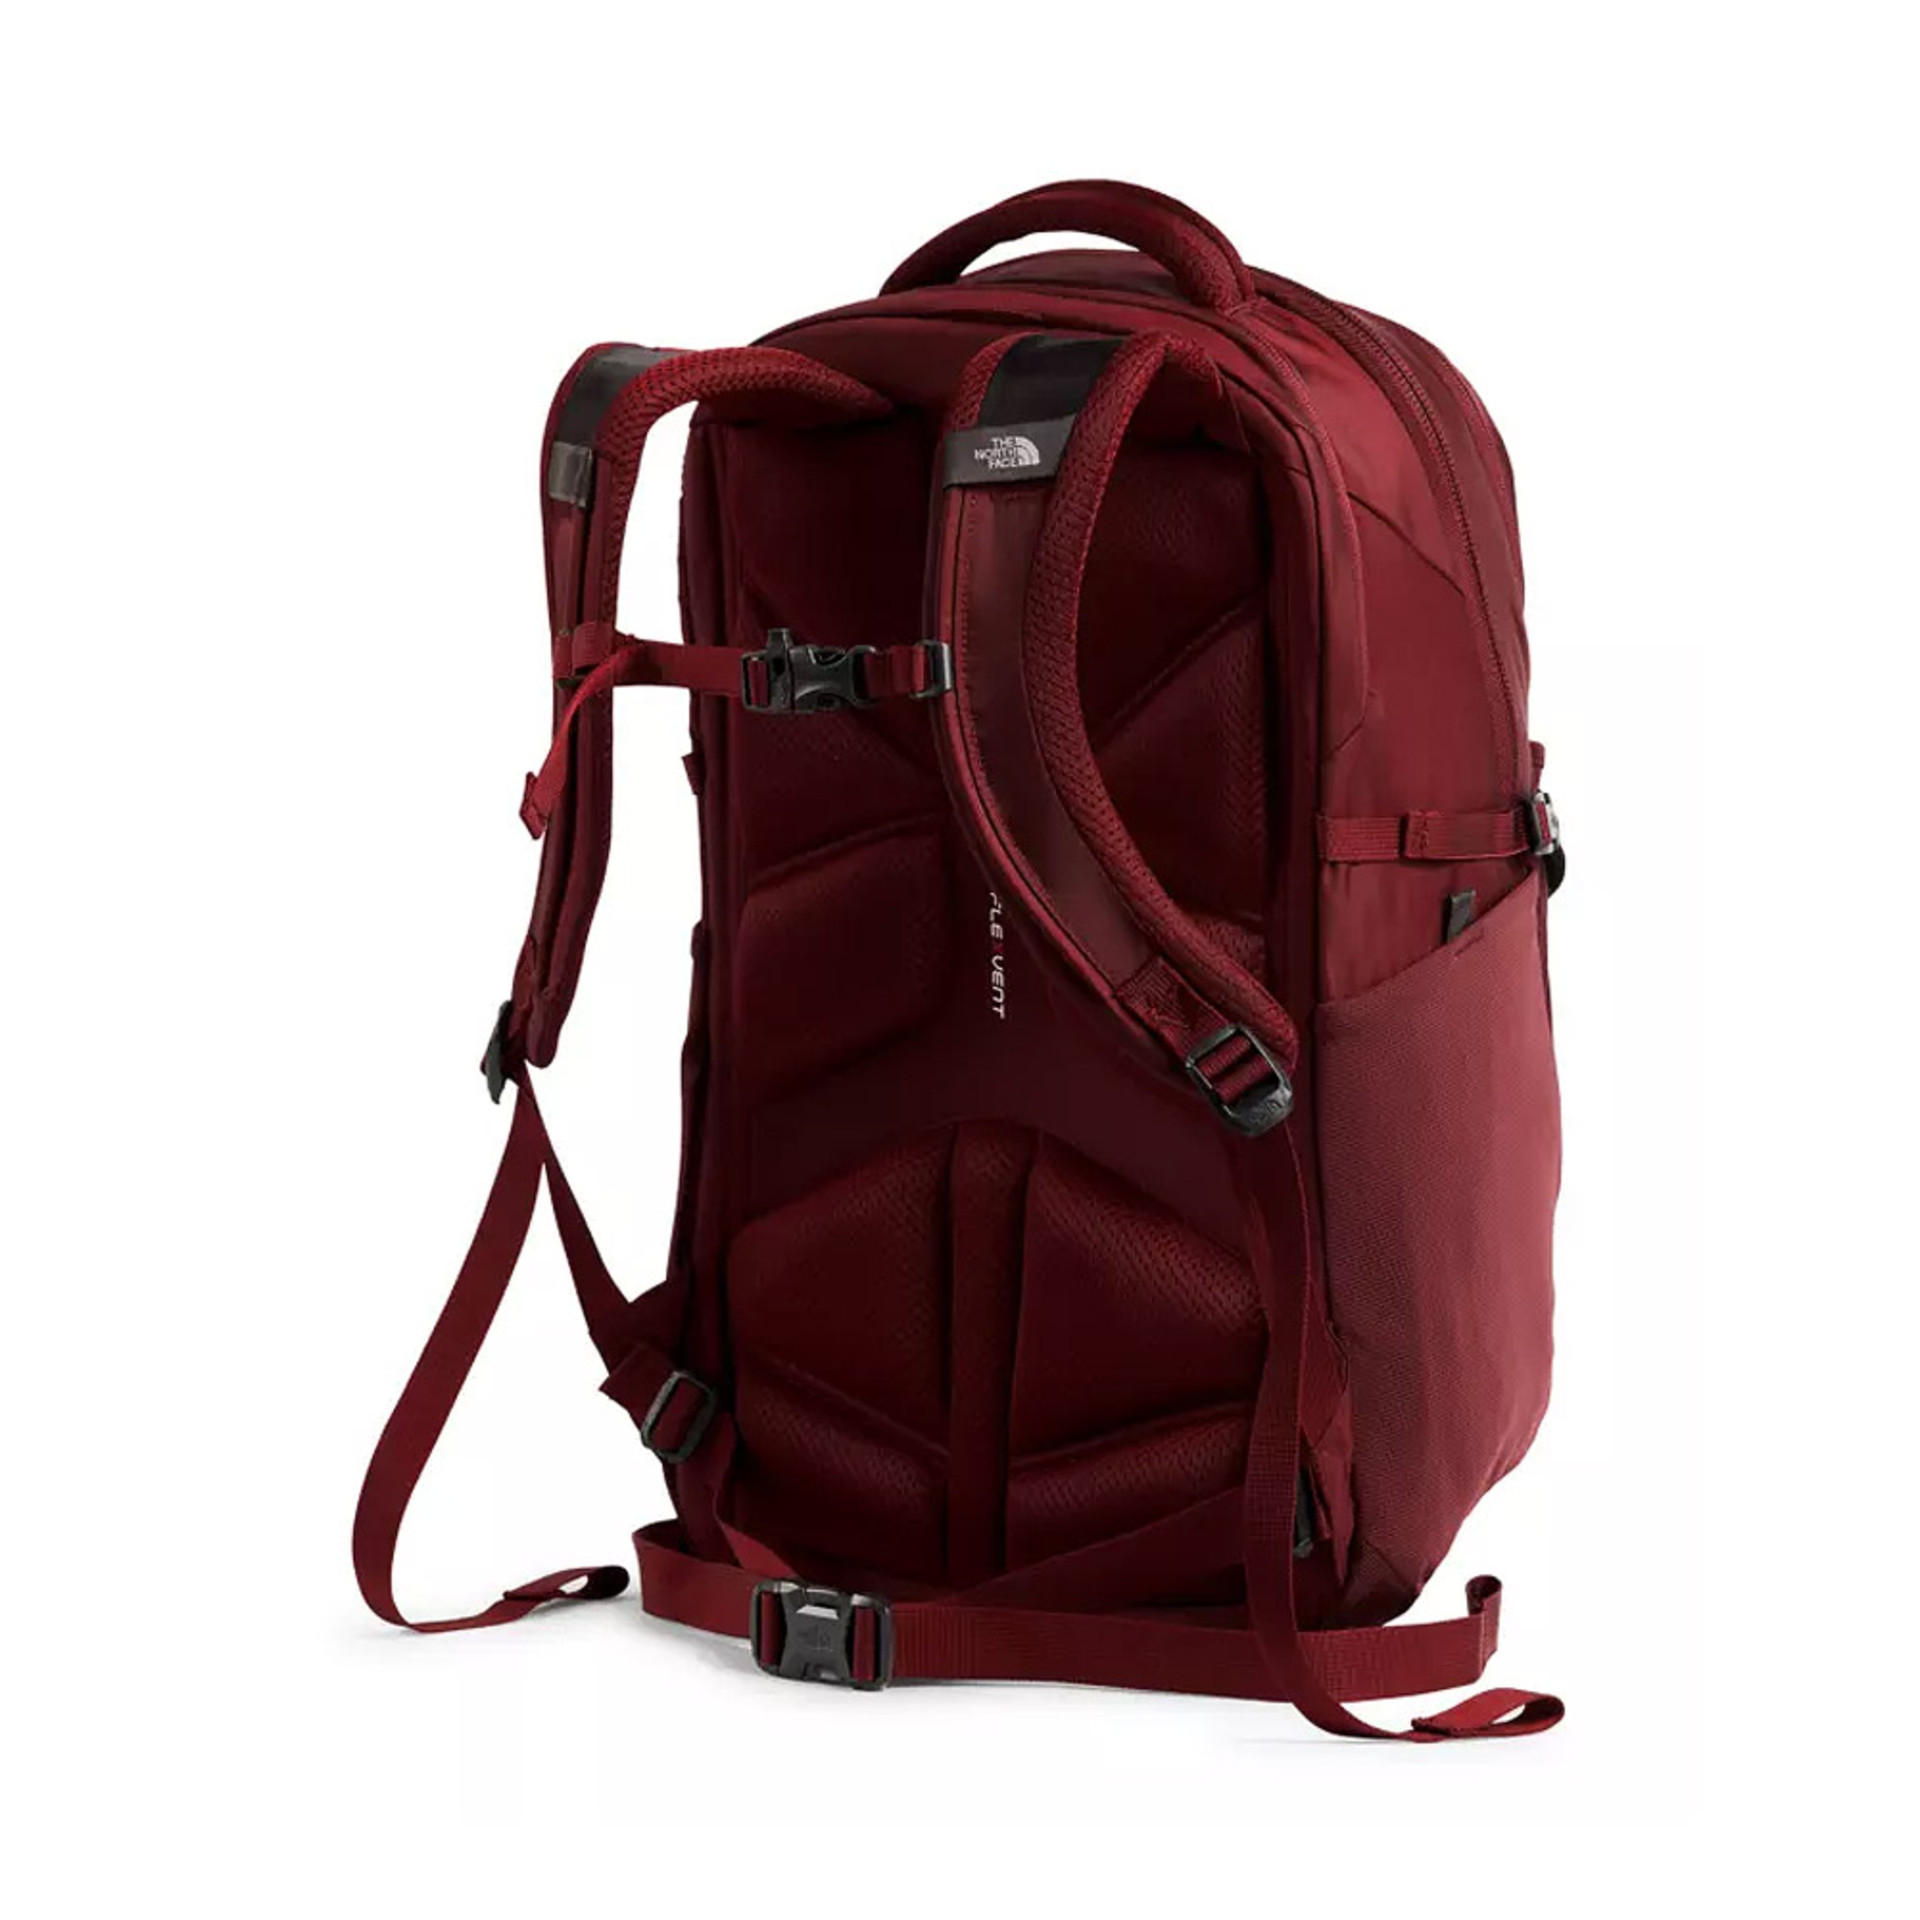 The North Face Women's Recon Backpack Deep Garnet Back